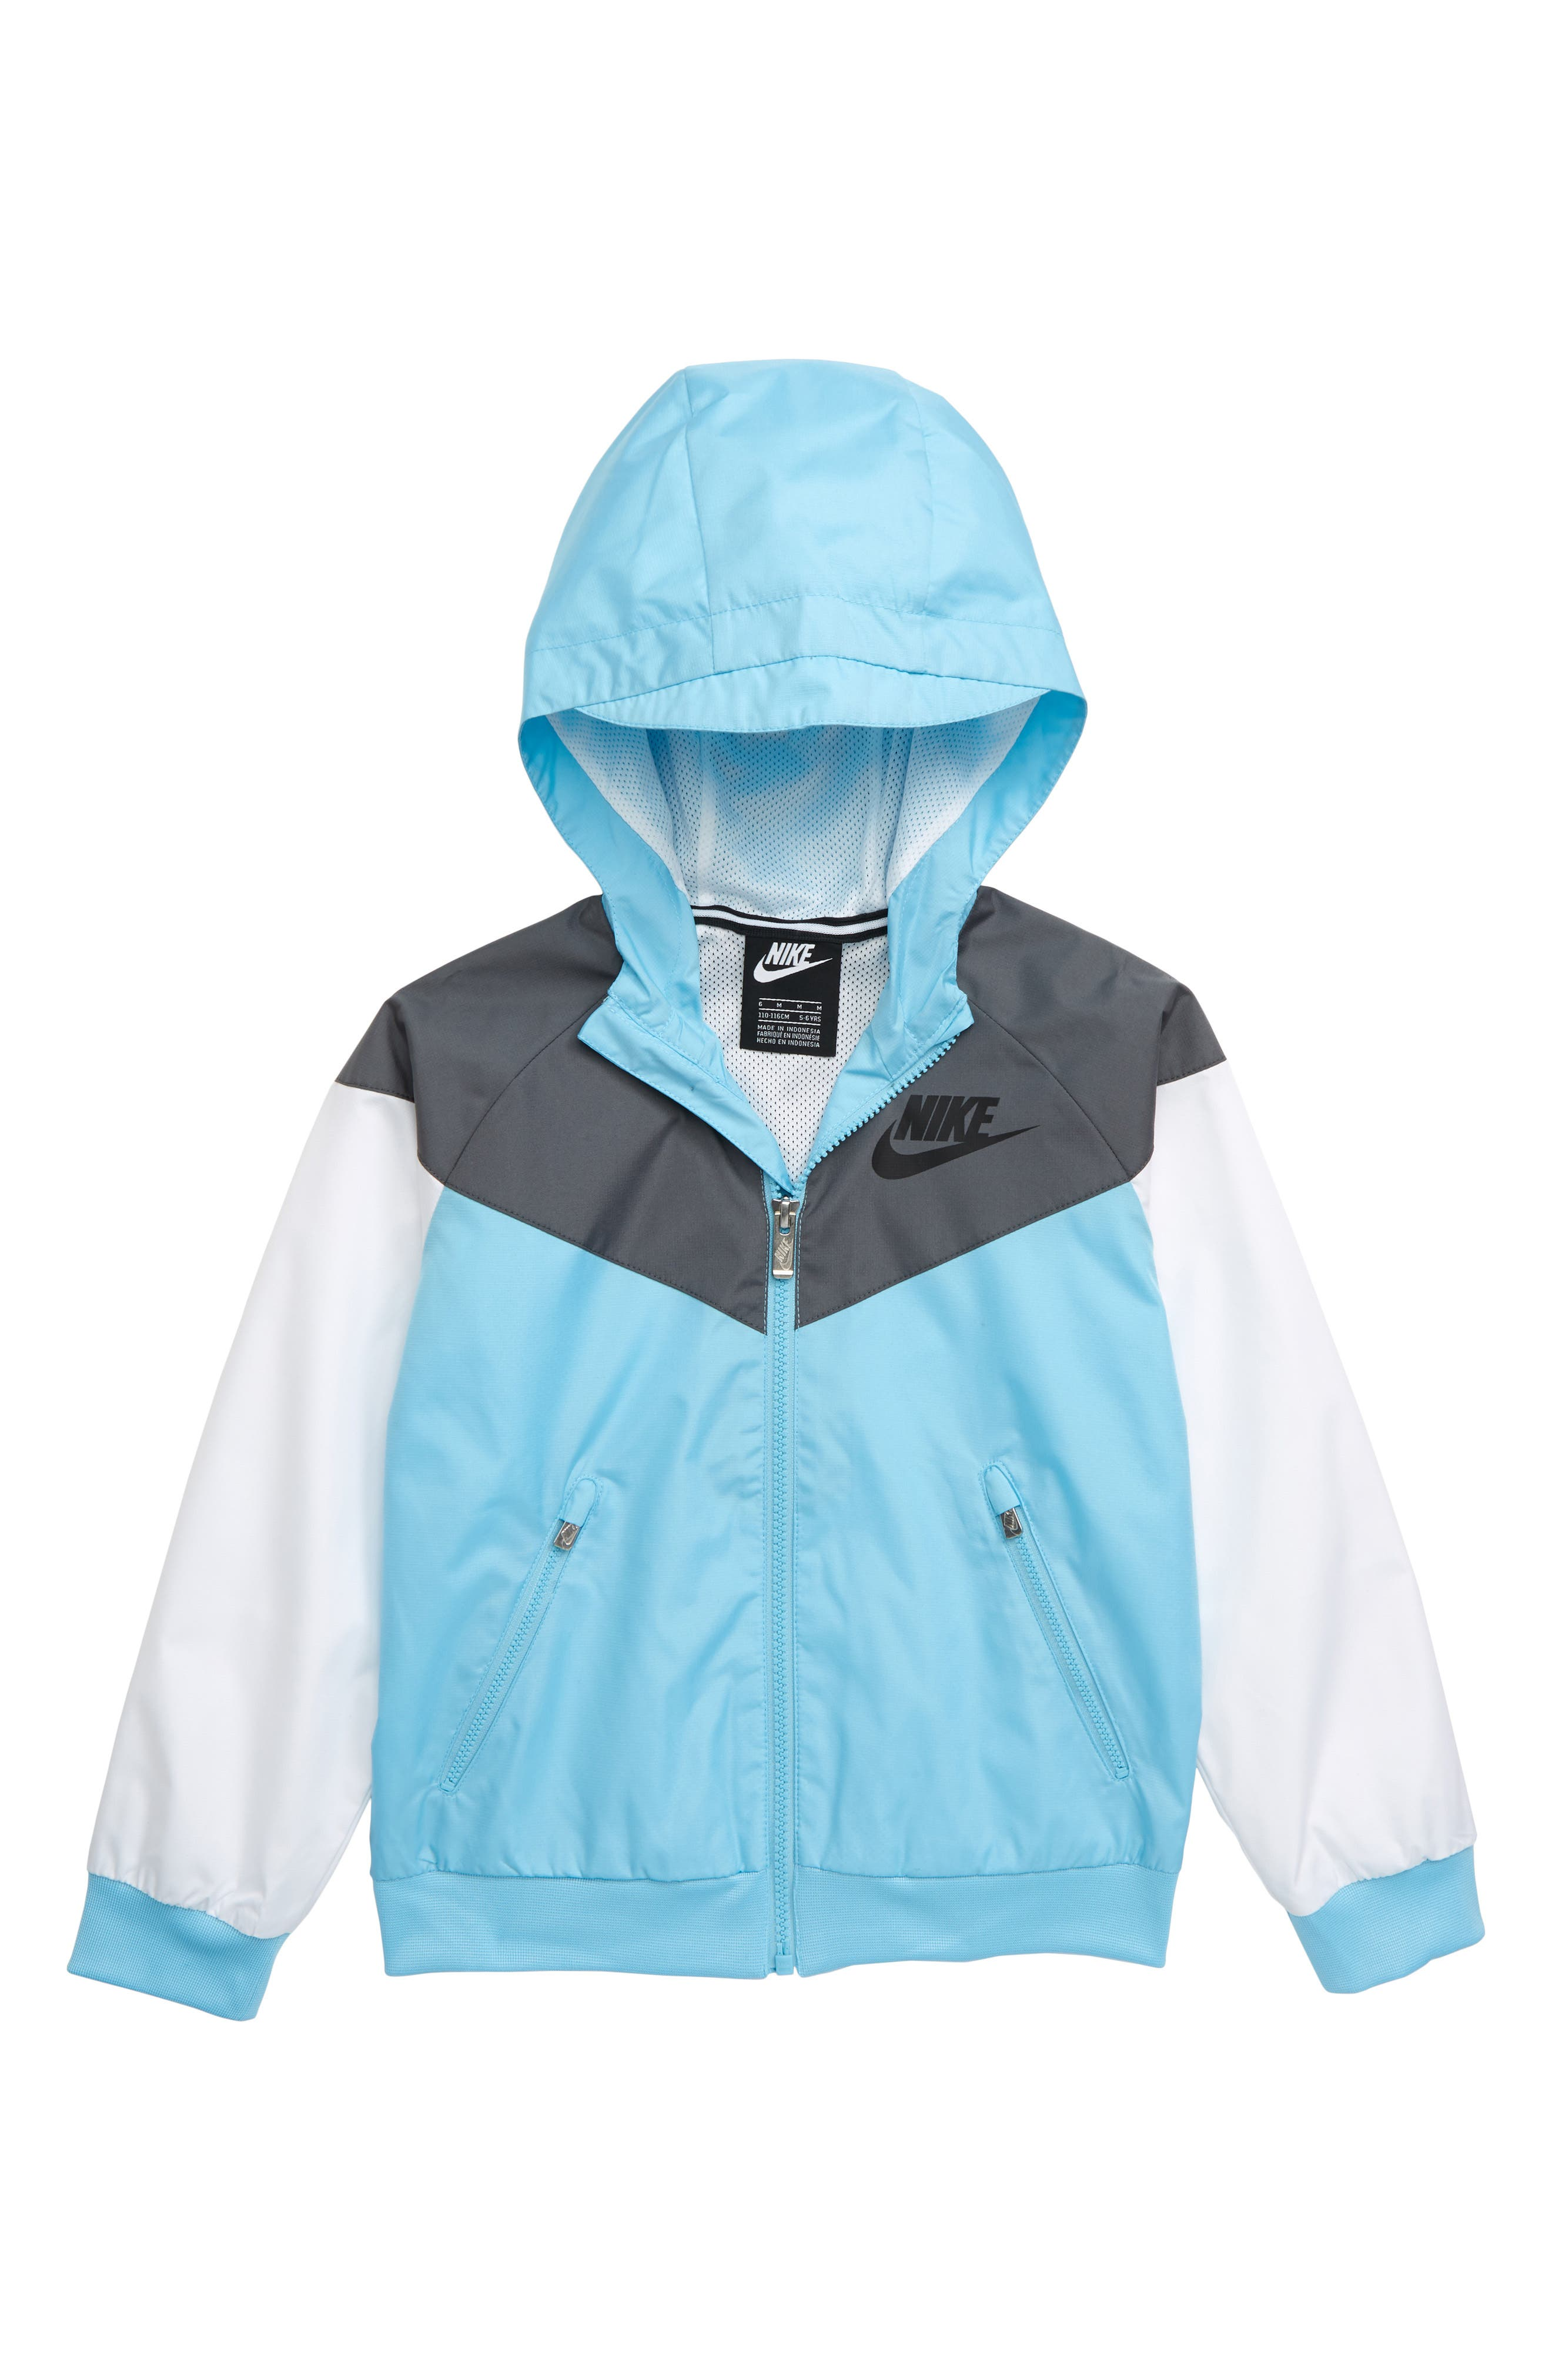 NIKE Windrunner Water Resistant Hooded Jacket, Main, color, BLUE GAZE